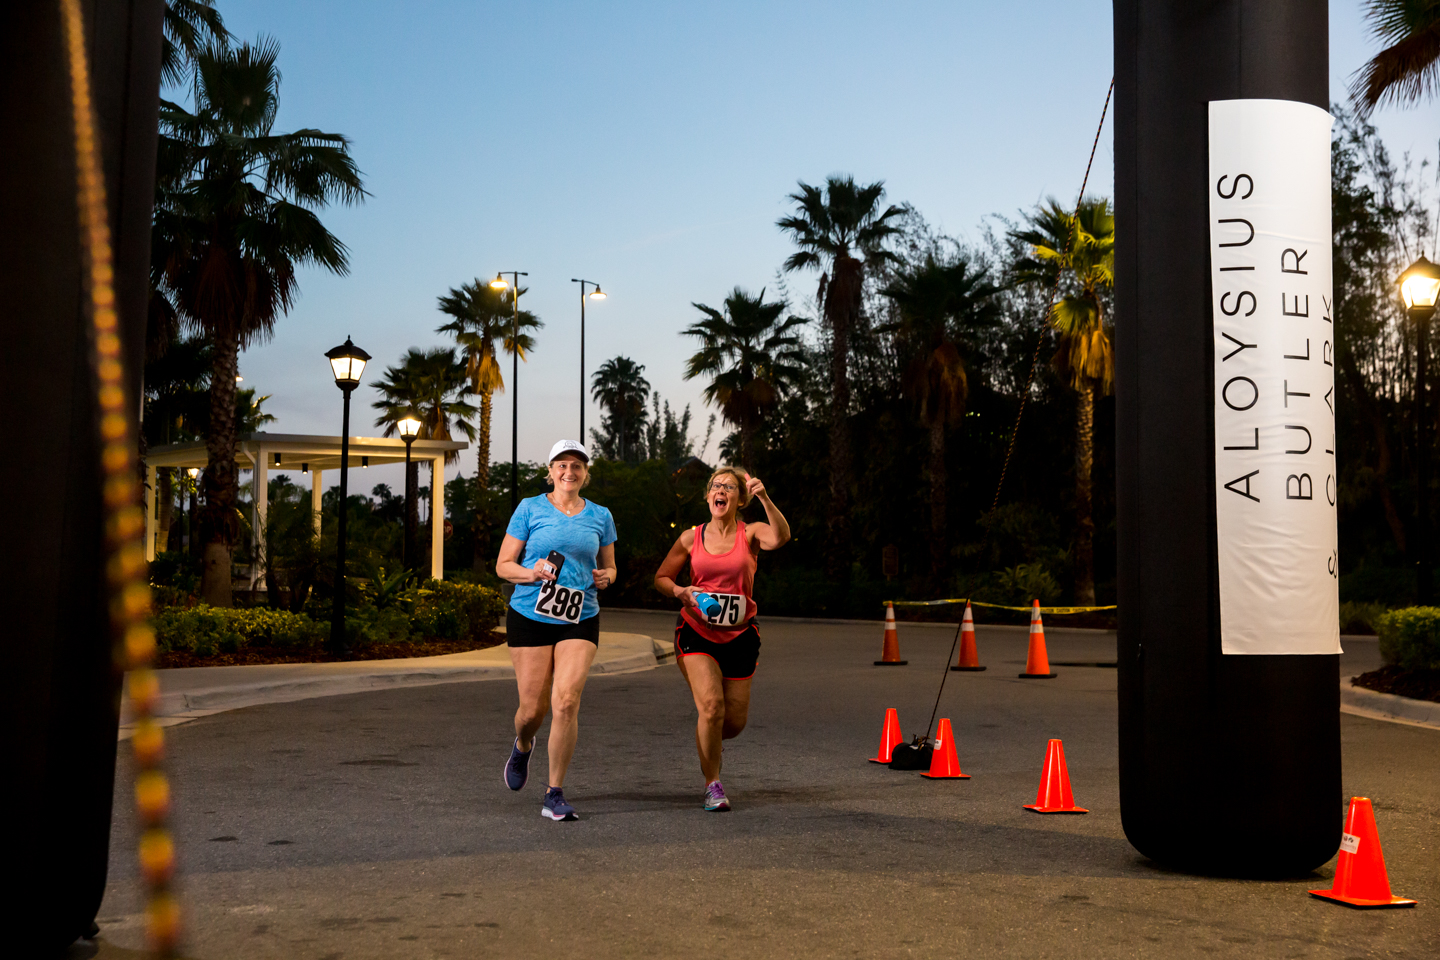 AAPPR-Conference-Expo-Professional-Event-Photography-Photographer-Orlando-lowes-sapphire-falls-resort-universal-5k-116.jpg